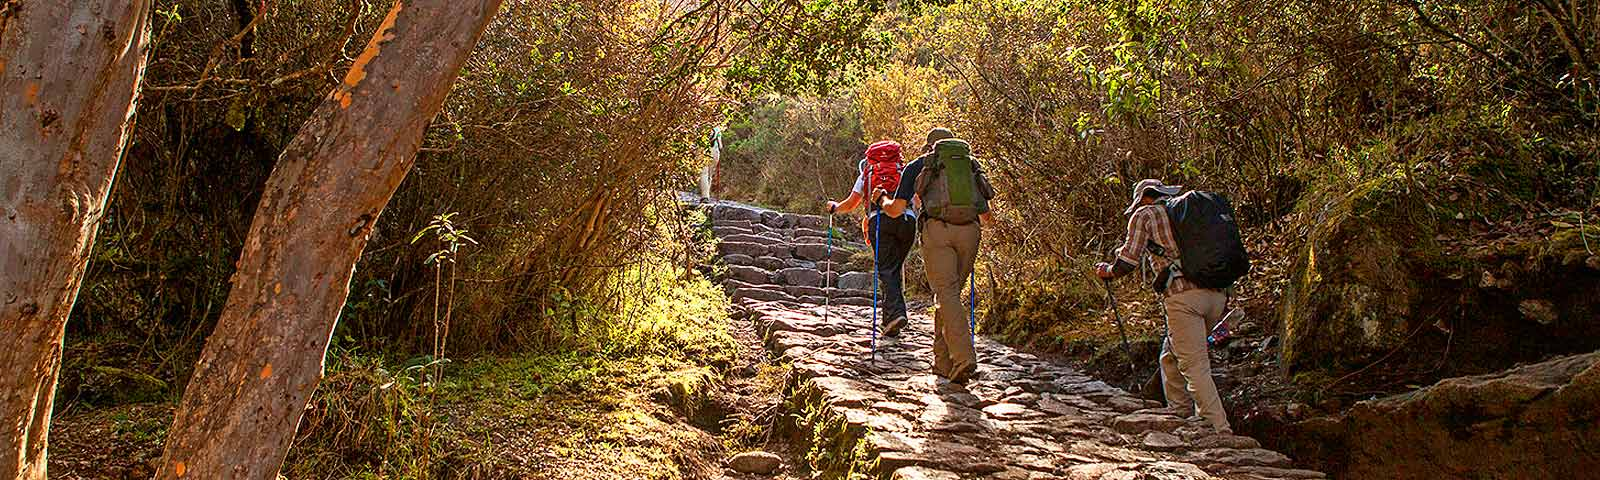 INCA TRAIL TO MACHU PICCHU 4 DAYS